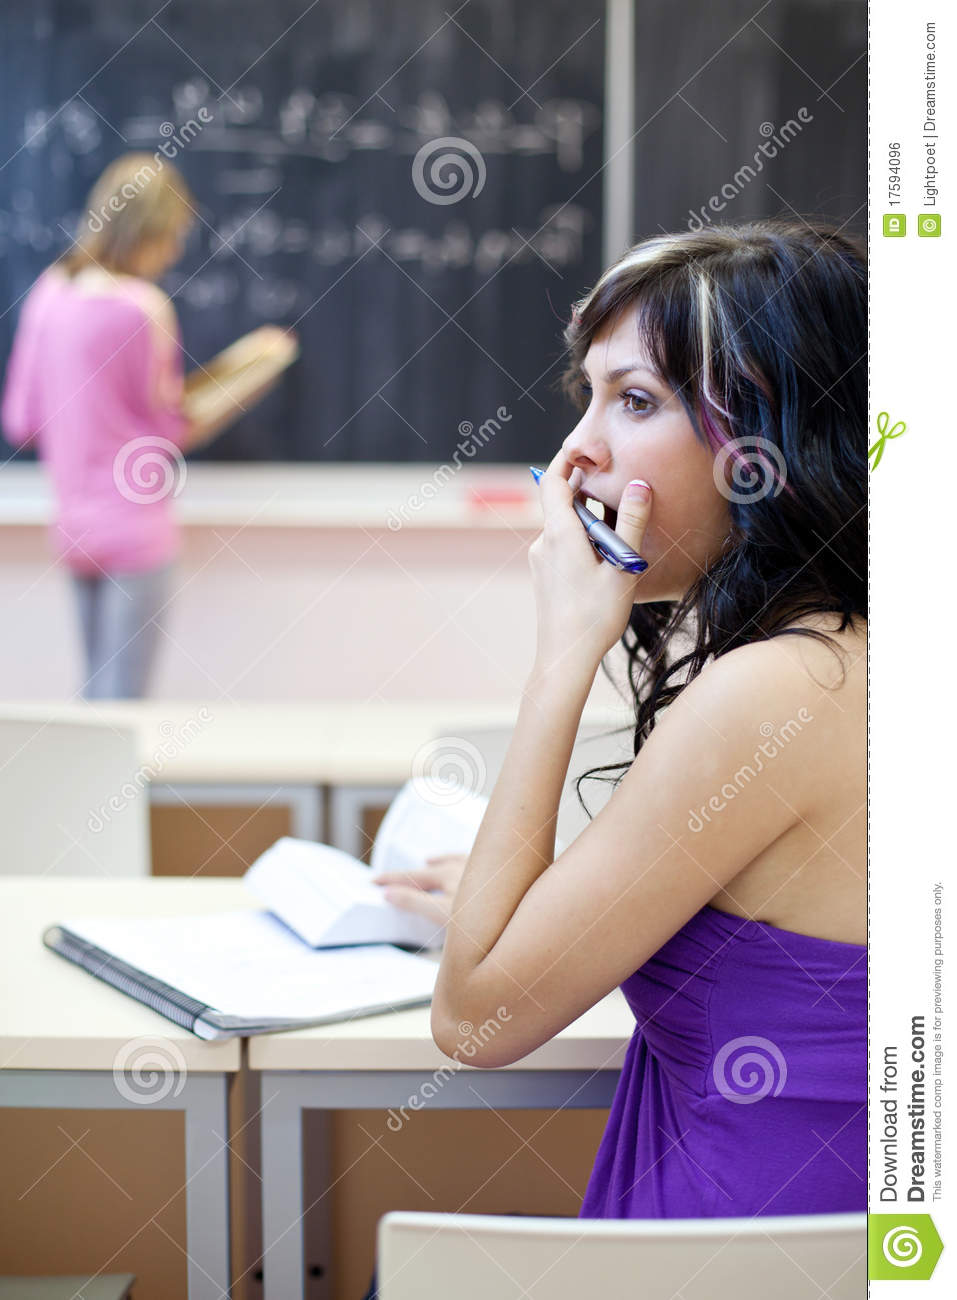 College Student Yawning In A Classroom Royalty Free Stock ...